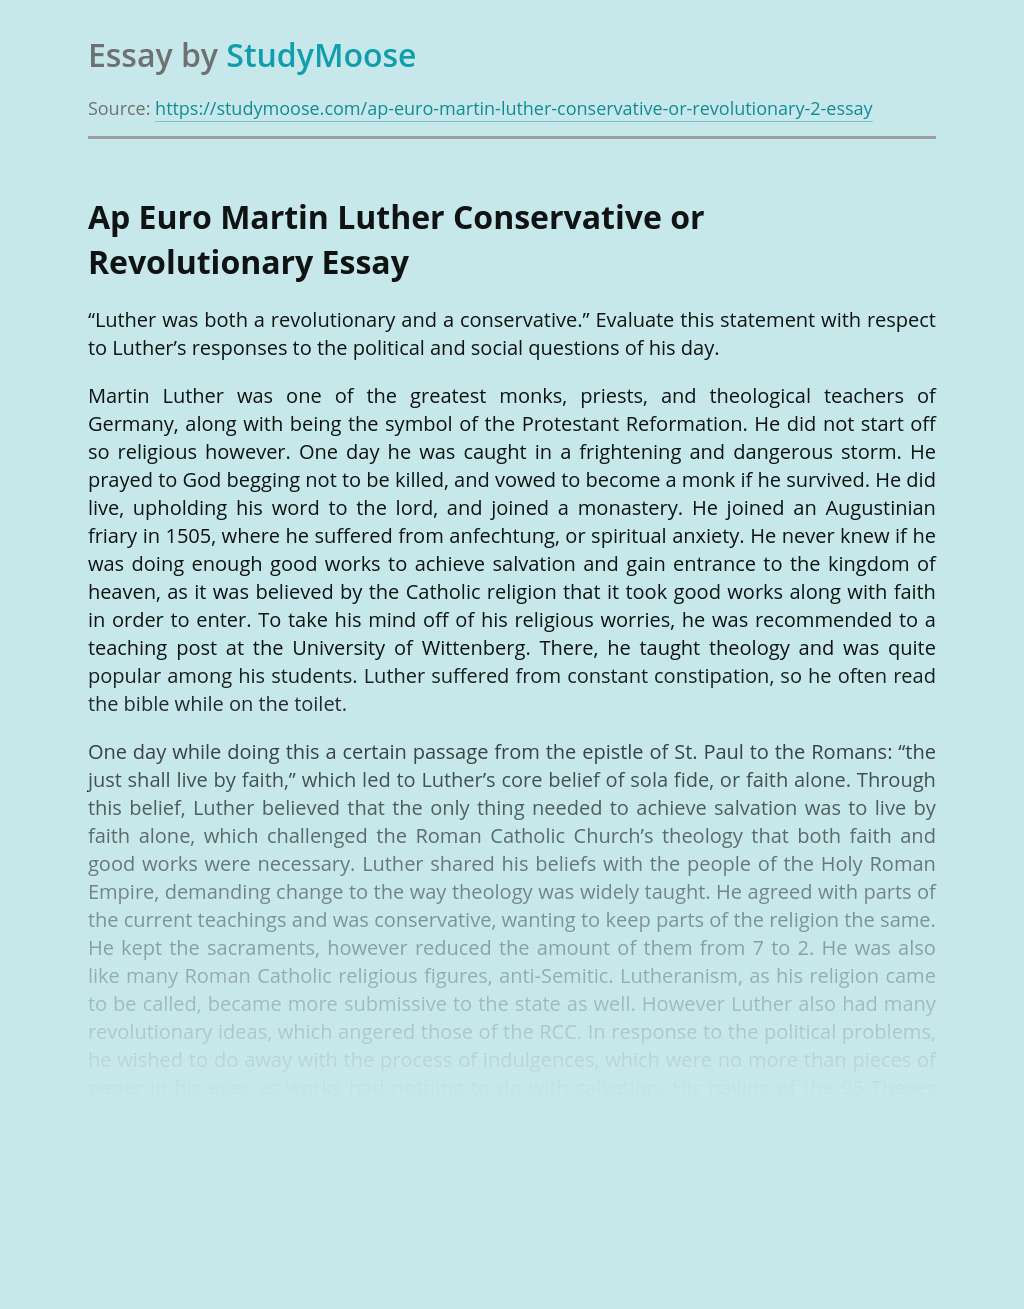 Martin Luther Conservative or Revolutionary